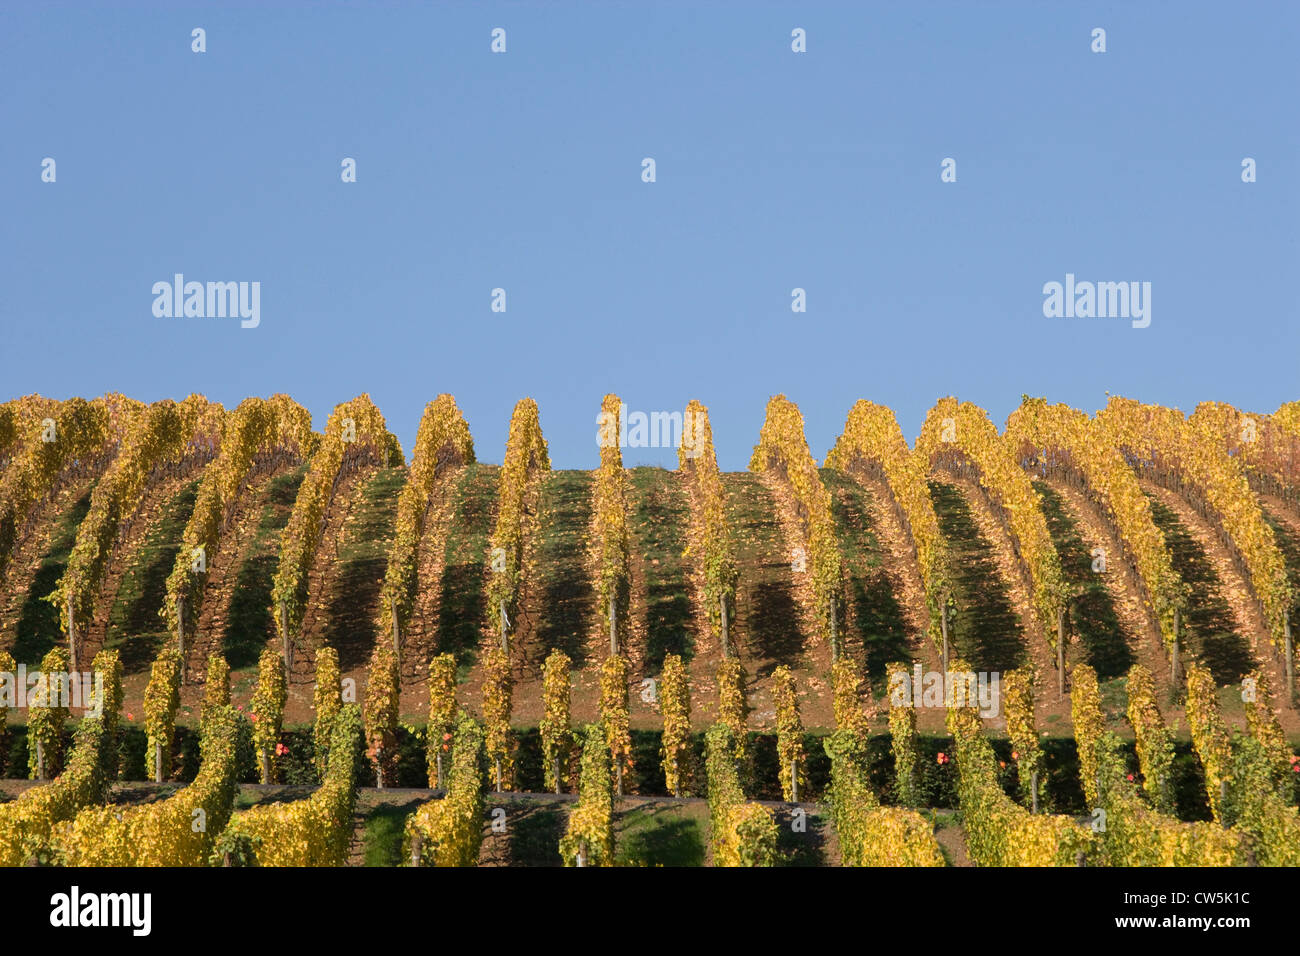 Vines in a vineyard, Archery Summit Winery, Willamette Valley, Oregon, USA - Stock Image